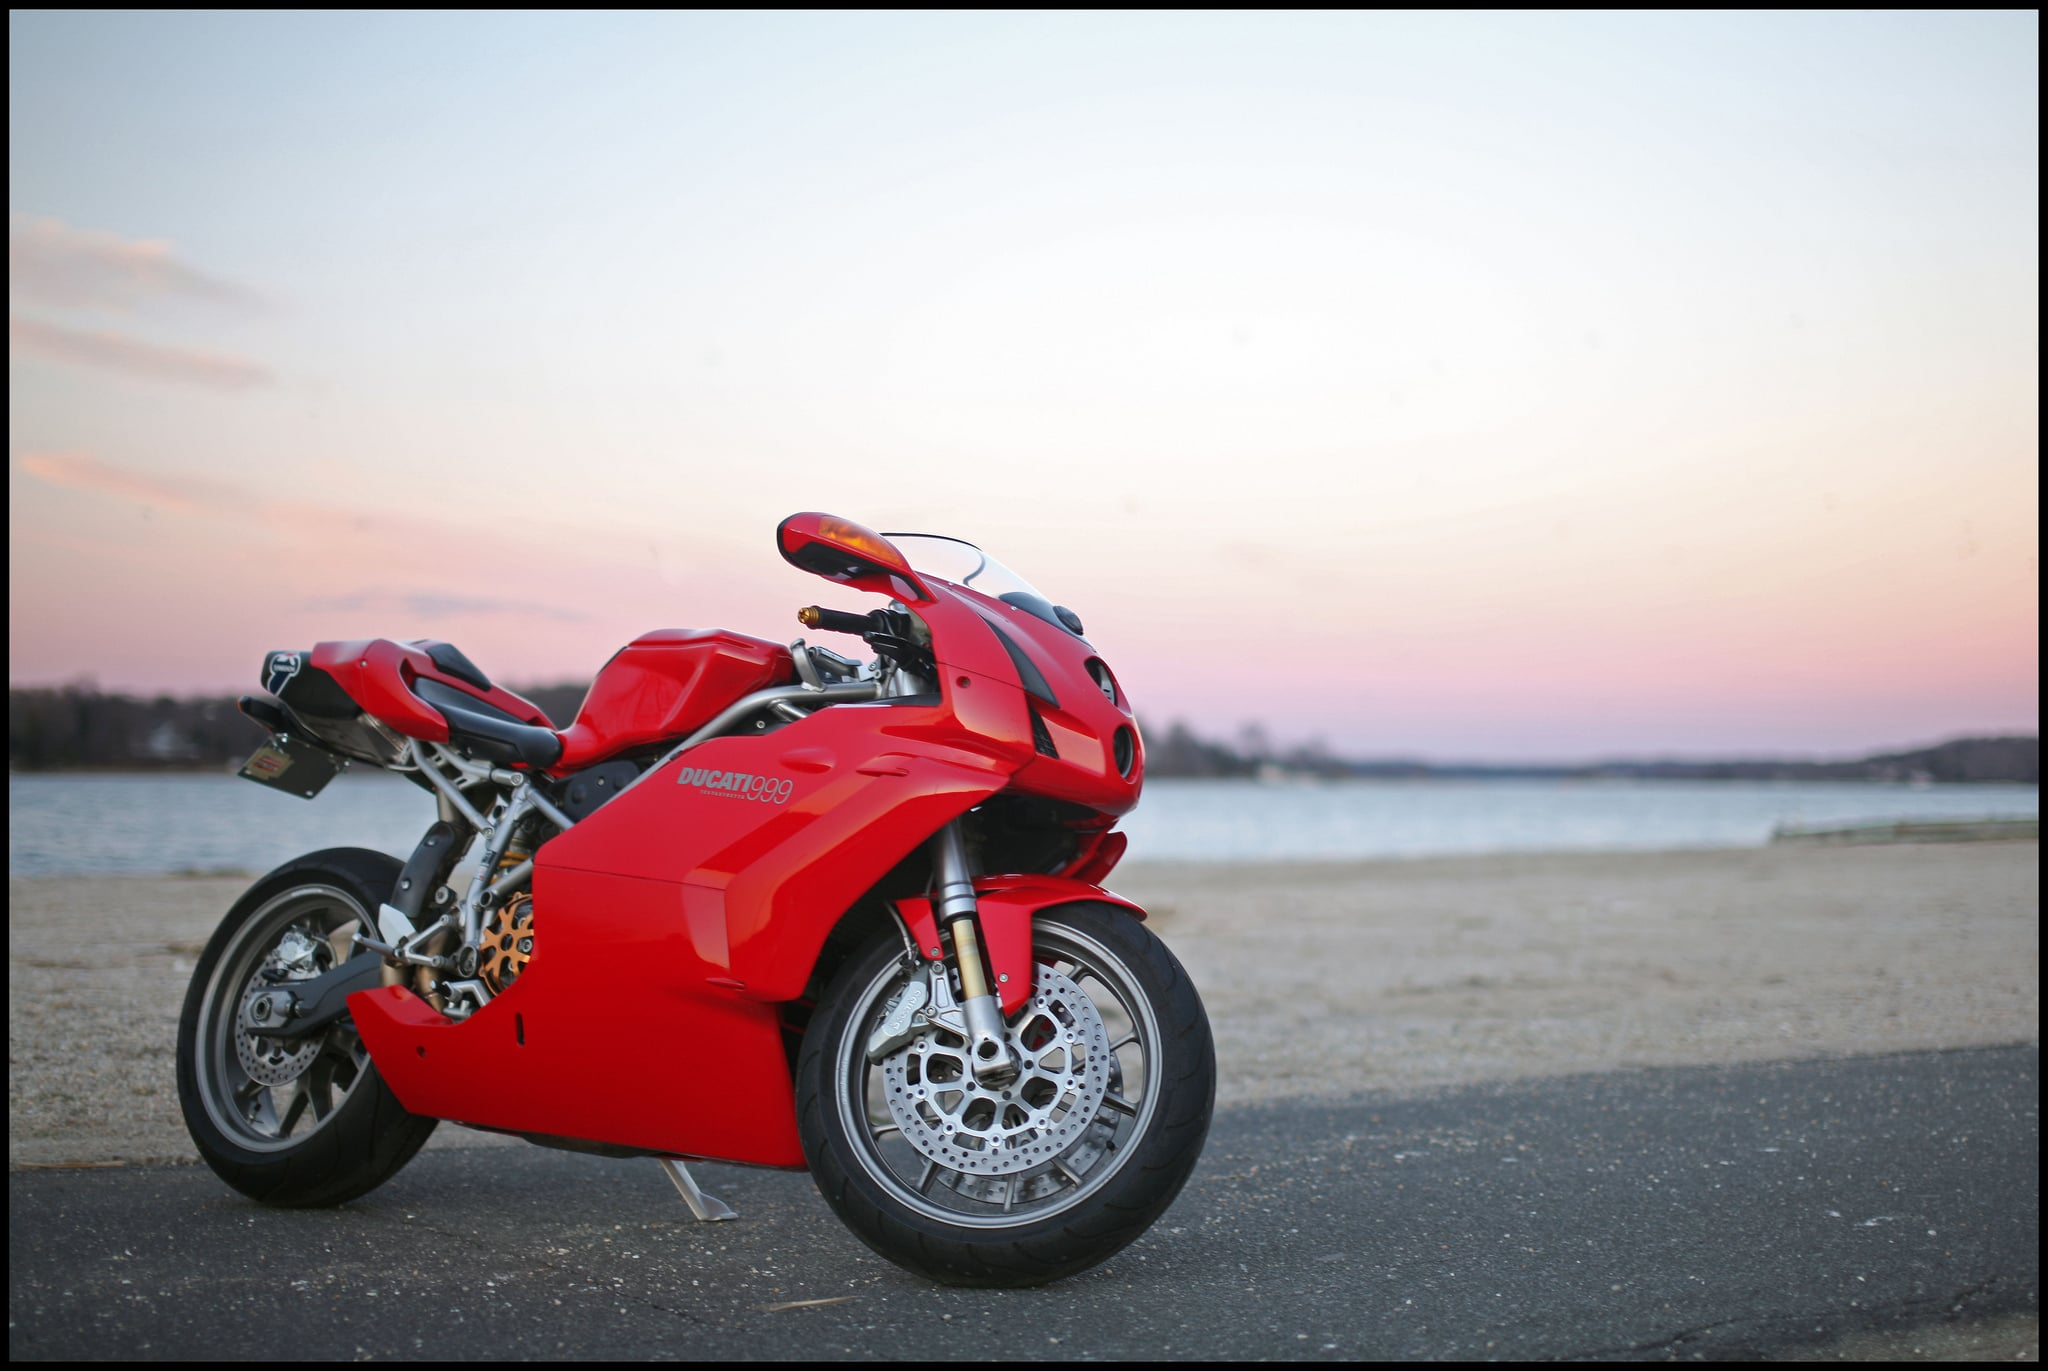 Car Games Wallpapers Hd 1080p 24 Ducati 999 Hd High Quality Wallpapers